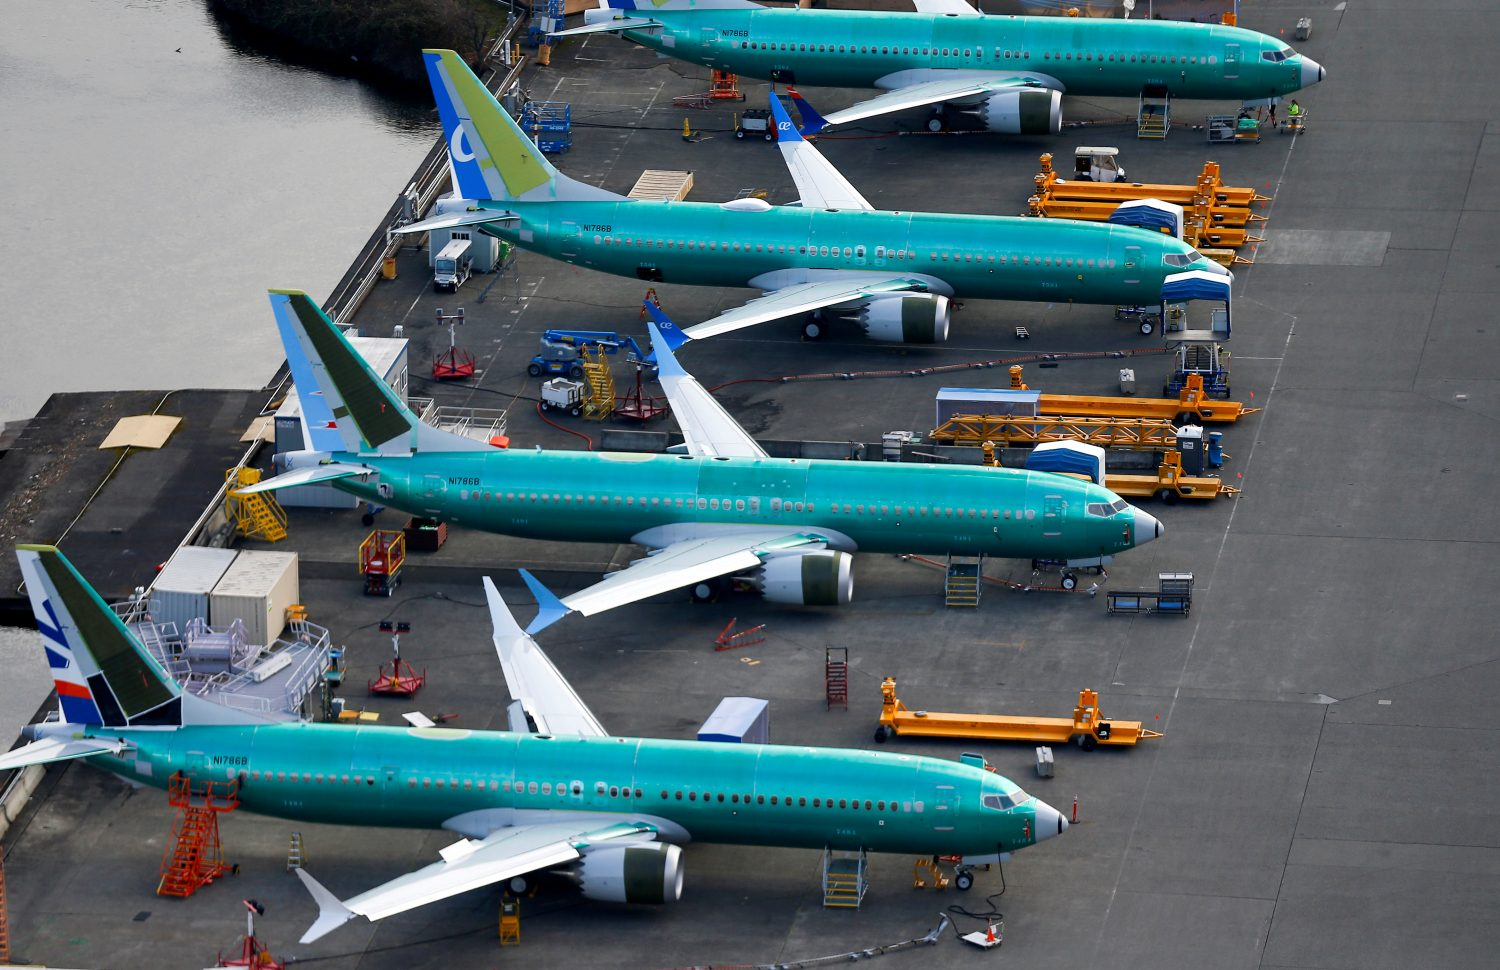 FILE PHOTO: An aerial photo shows Boeing 737 MAX airplanes parked at the Boeing Factory in Renton, Washington, U.S. March 21, 2019. REUTERS/Lindsey Wasson